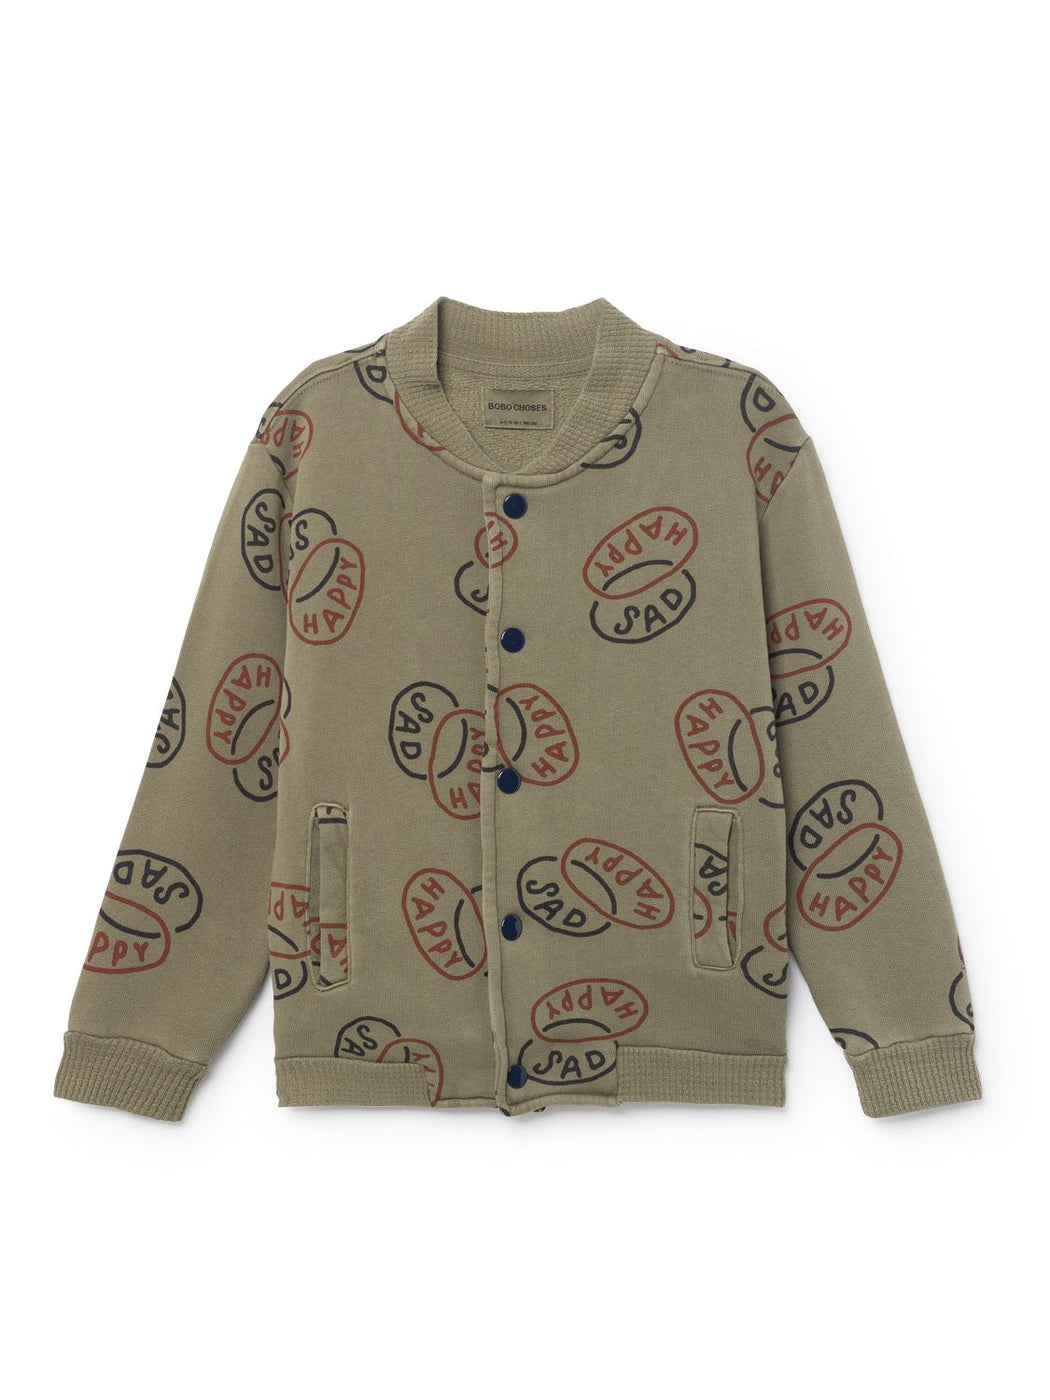 Bobo Choses Happy Sad Buttons Sweatshirt